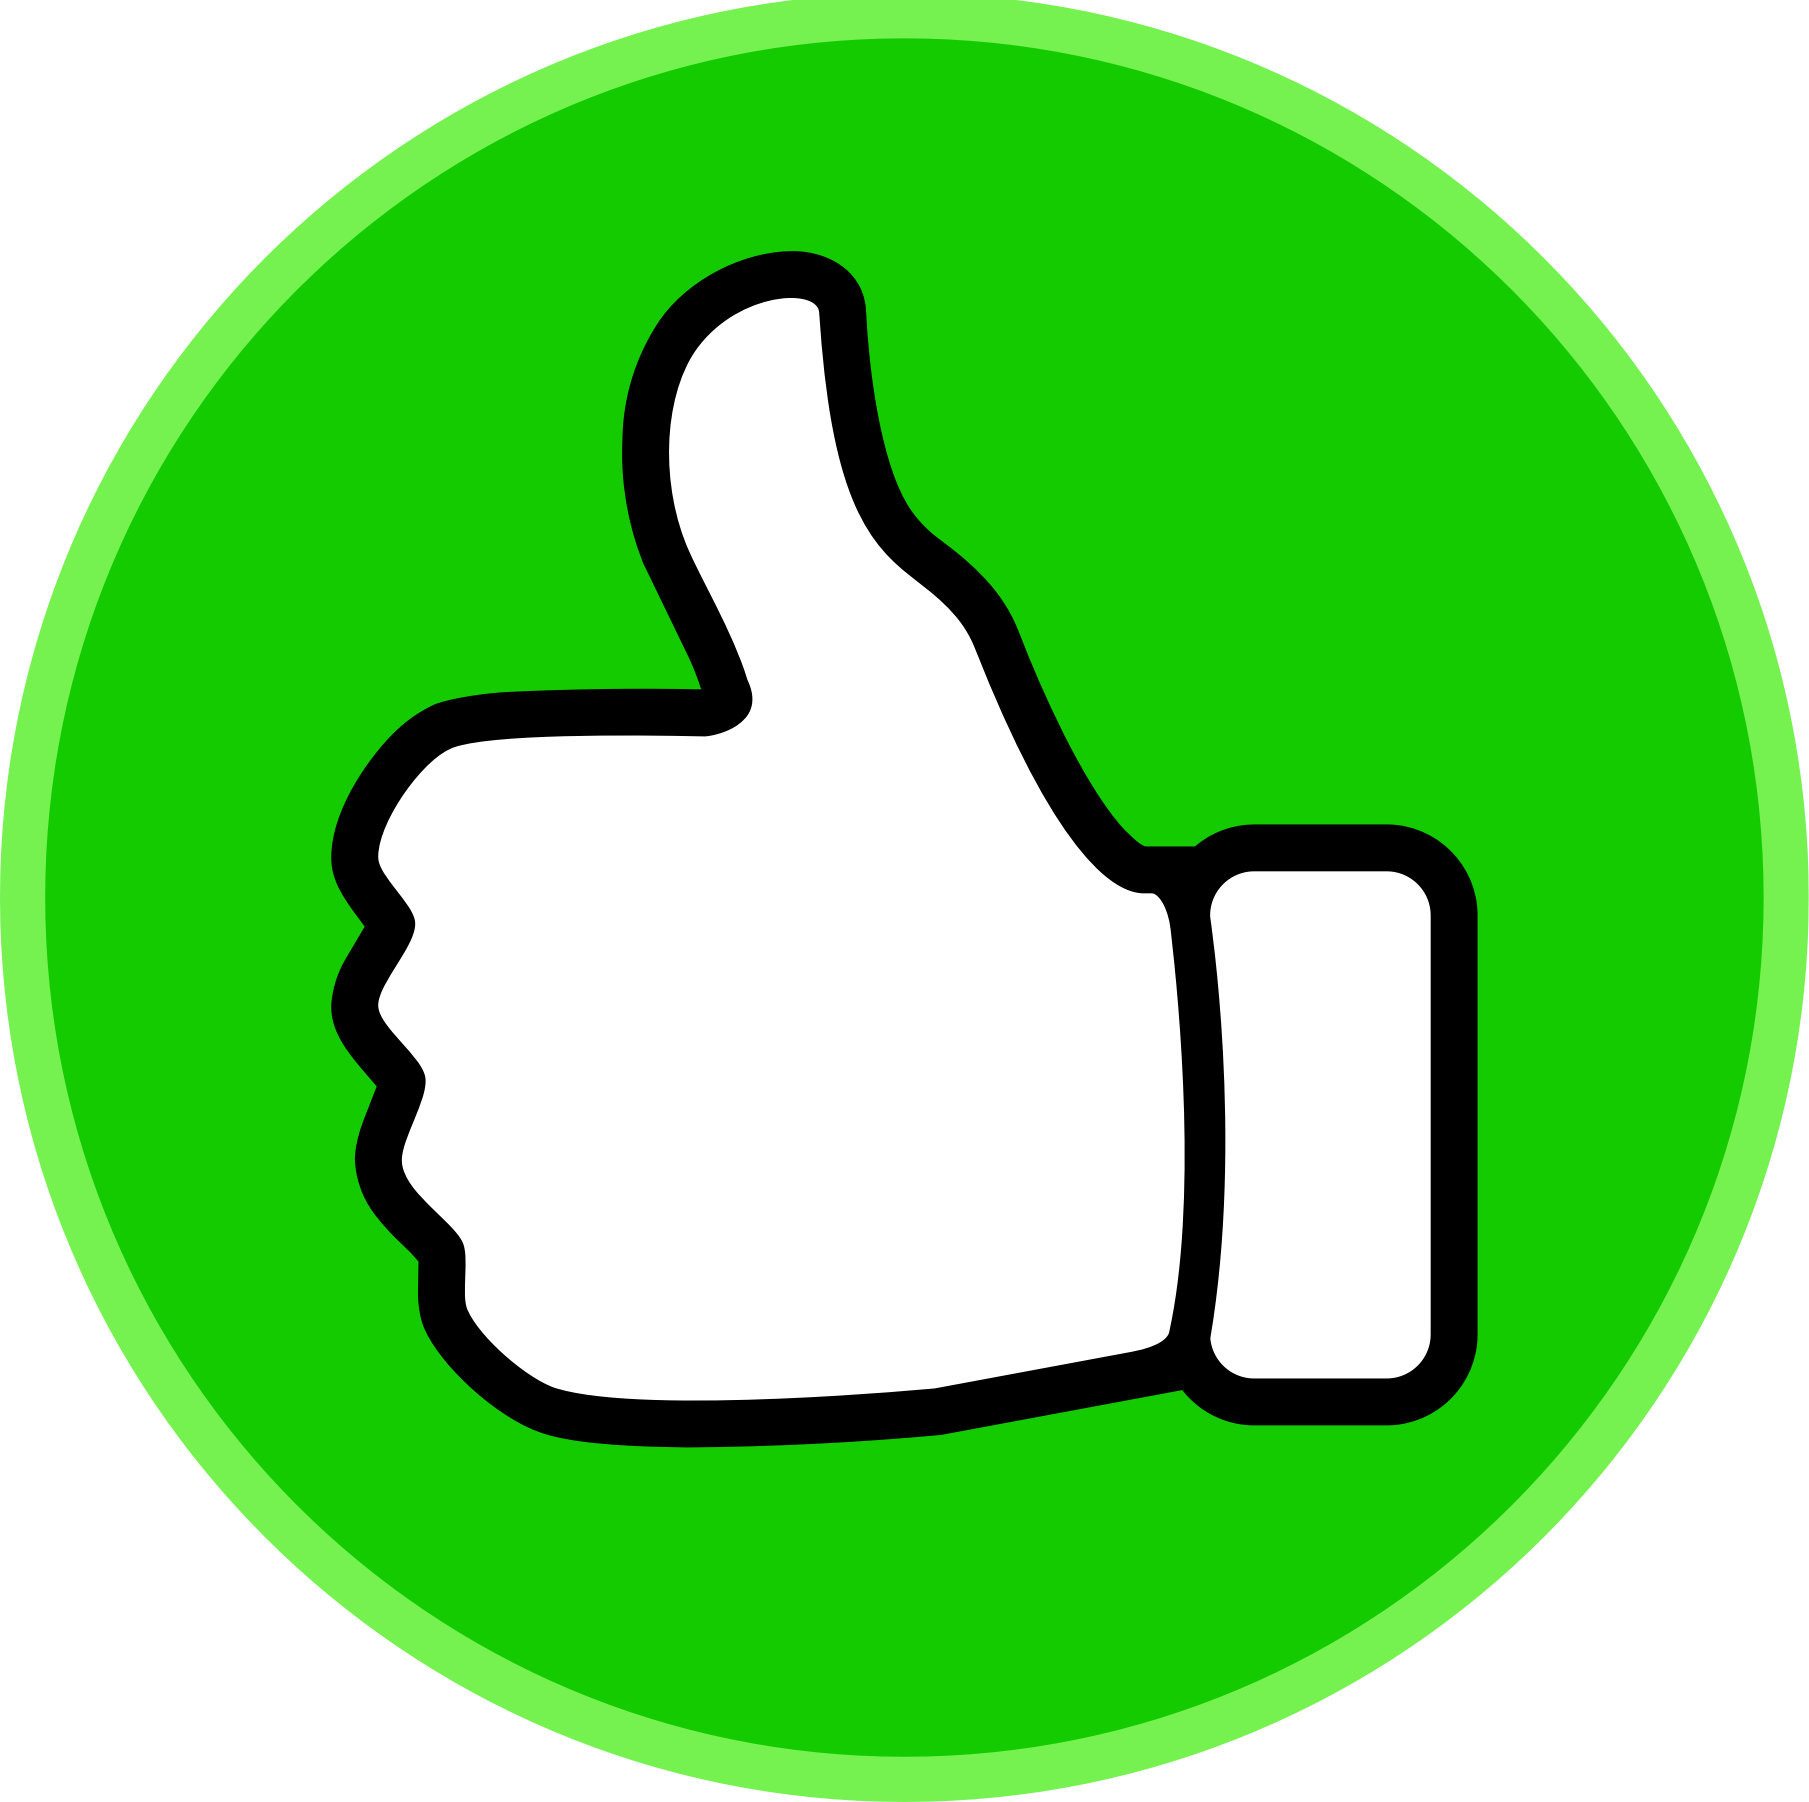 banner transparent Thumbs up circle big. Yes clipart two